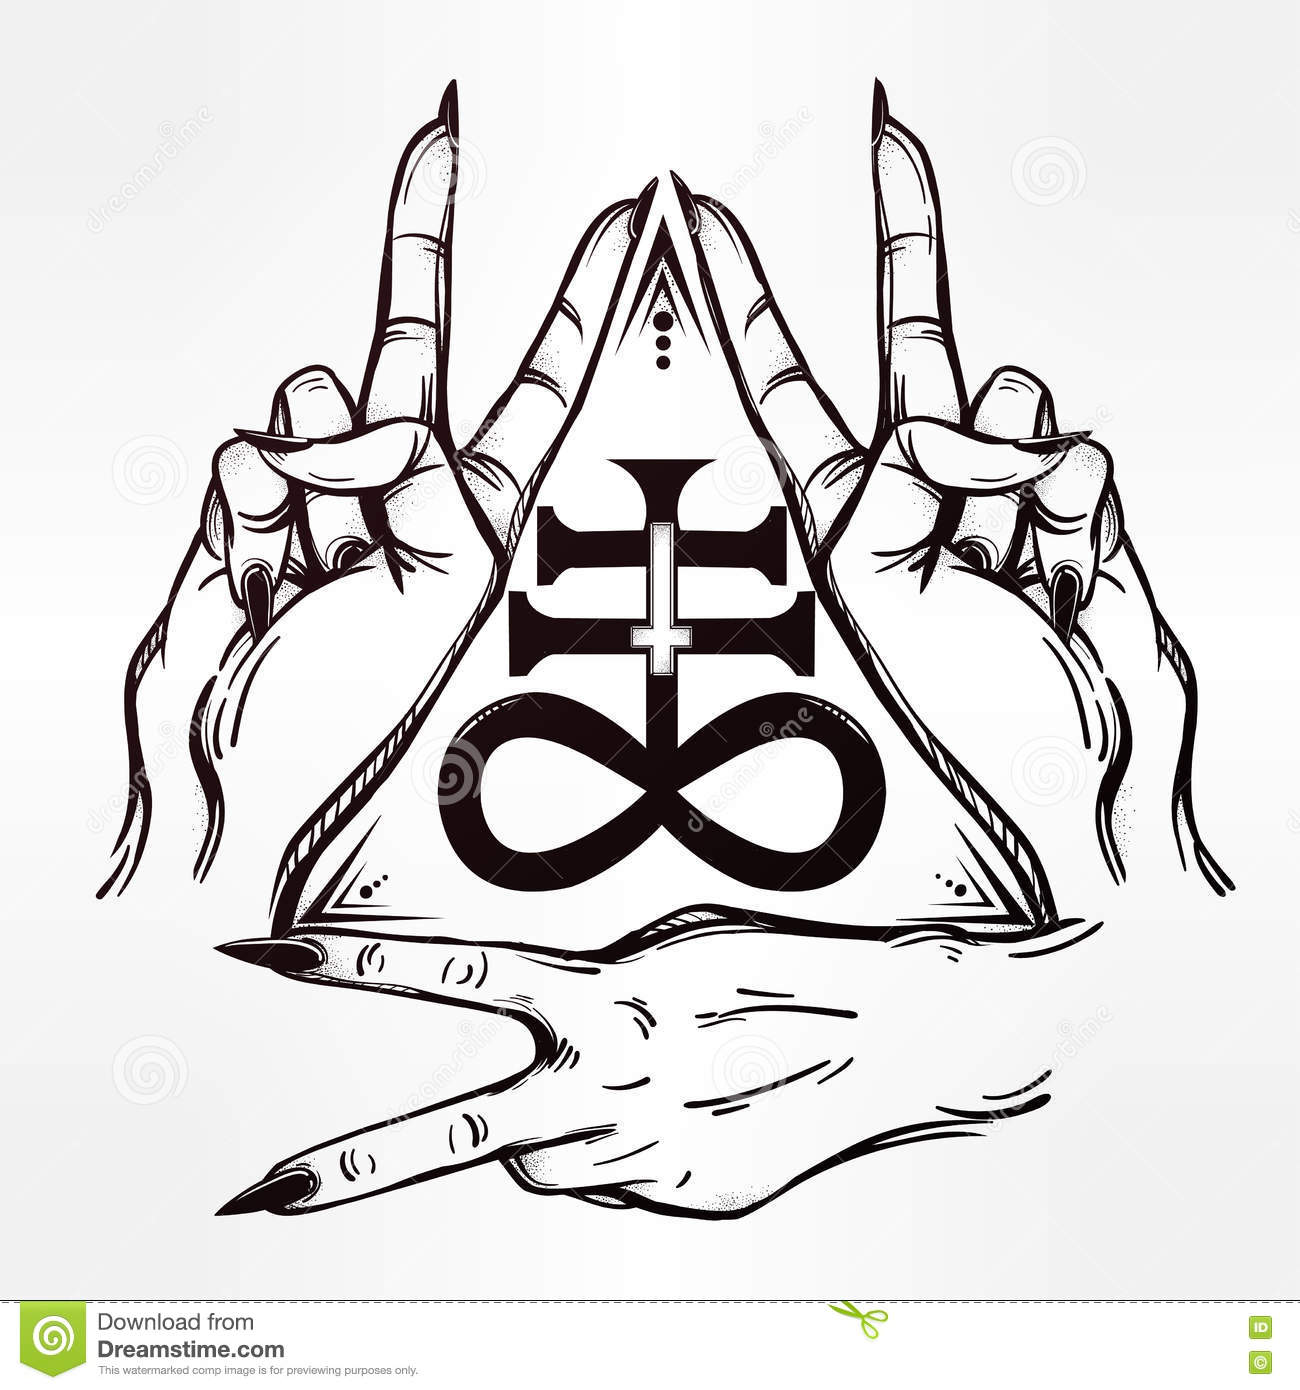 V Sign Hand Flash Tattoo Hands And Satanic Cross Stock Vector